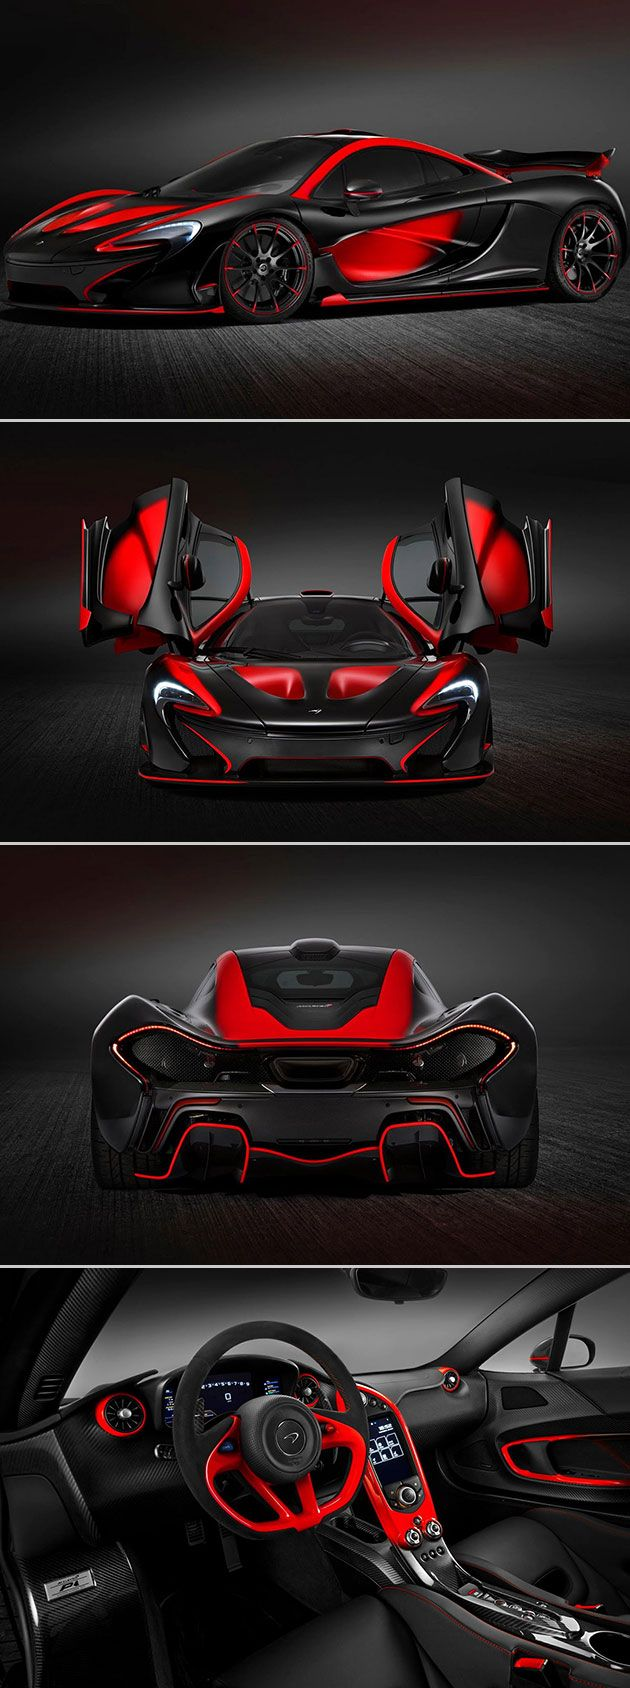 The 2014 McLaren P1 Supercar. http://www.amazon.com/Organizer-Foldable-Softsided-Collapsible-Organizer/dp/B00EARP1JO